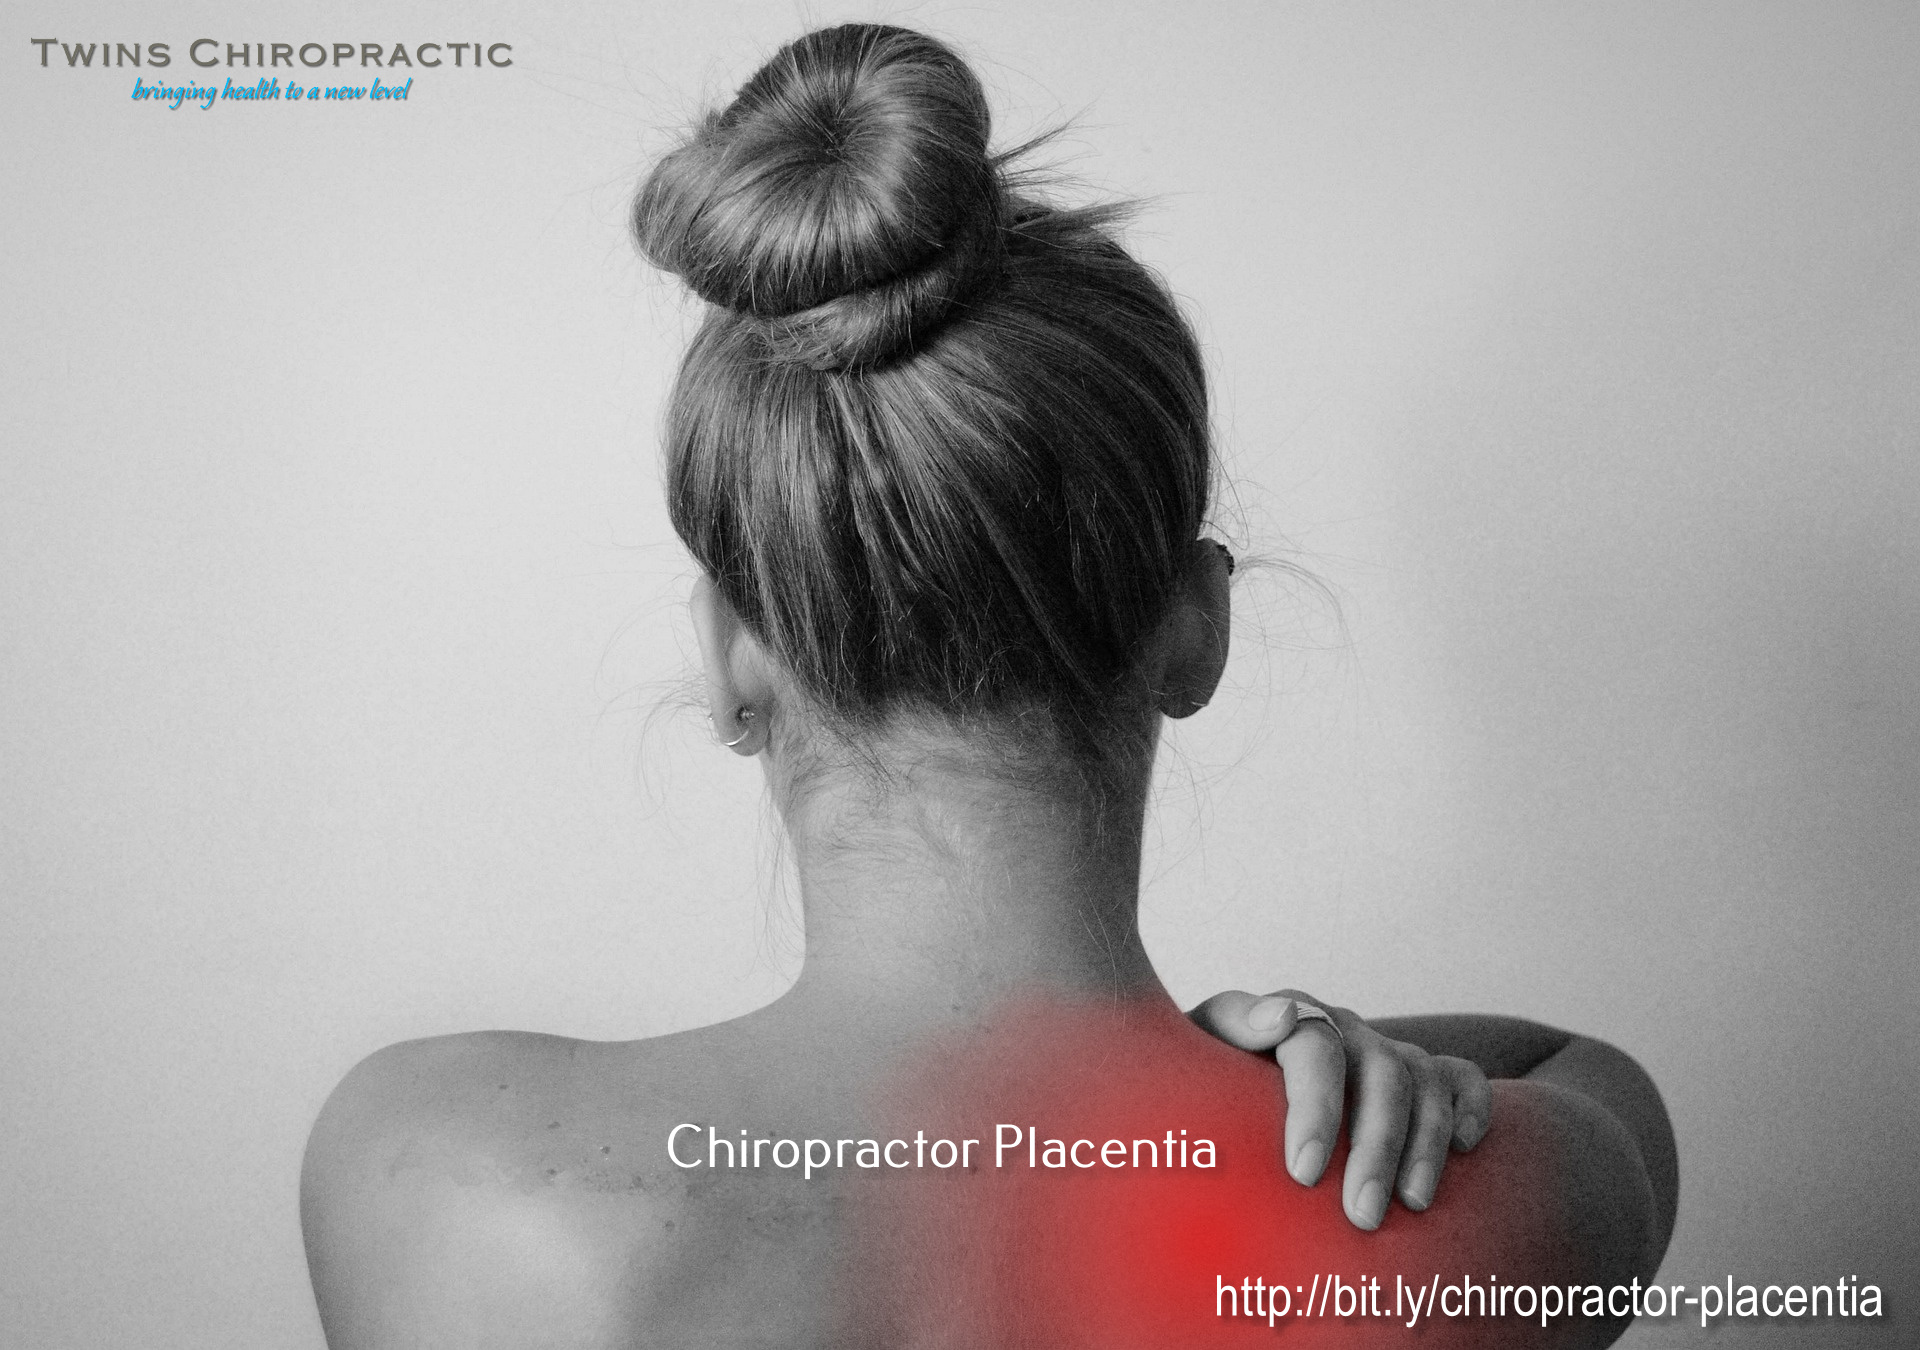 Twins Chiropractic (Placentia) (M2) (CID) - 1